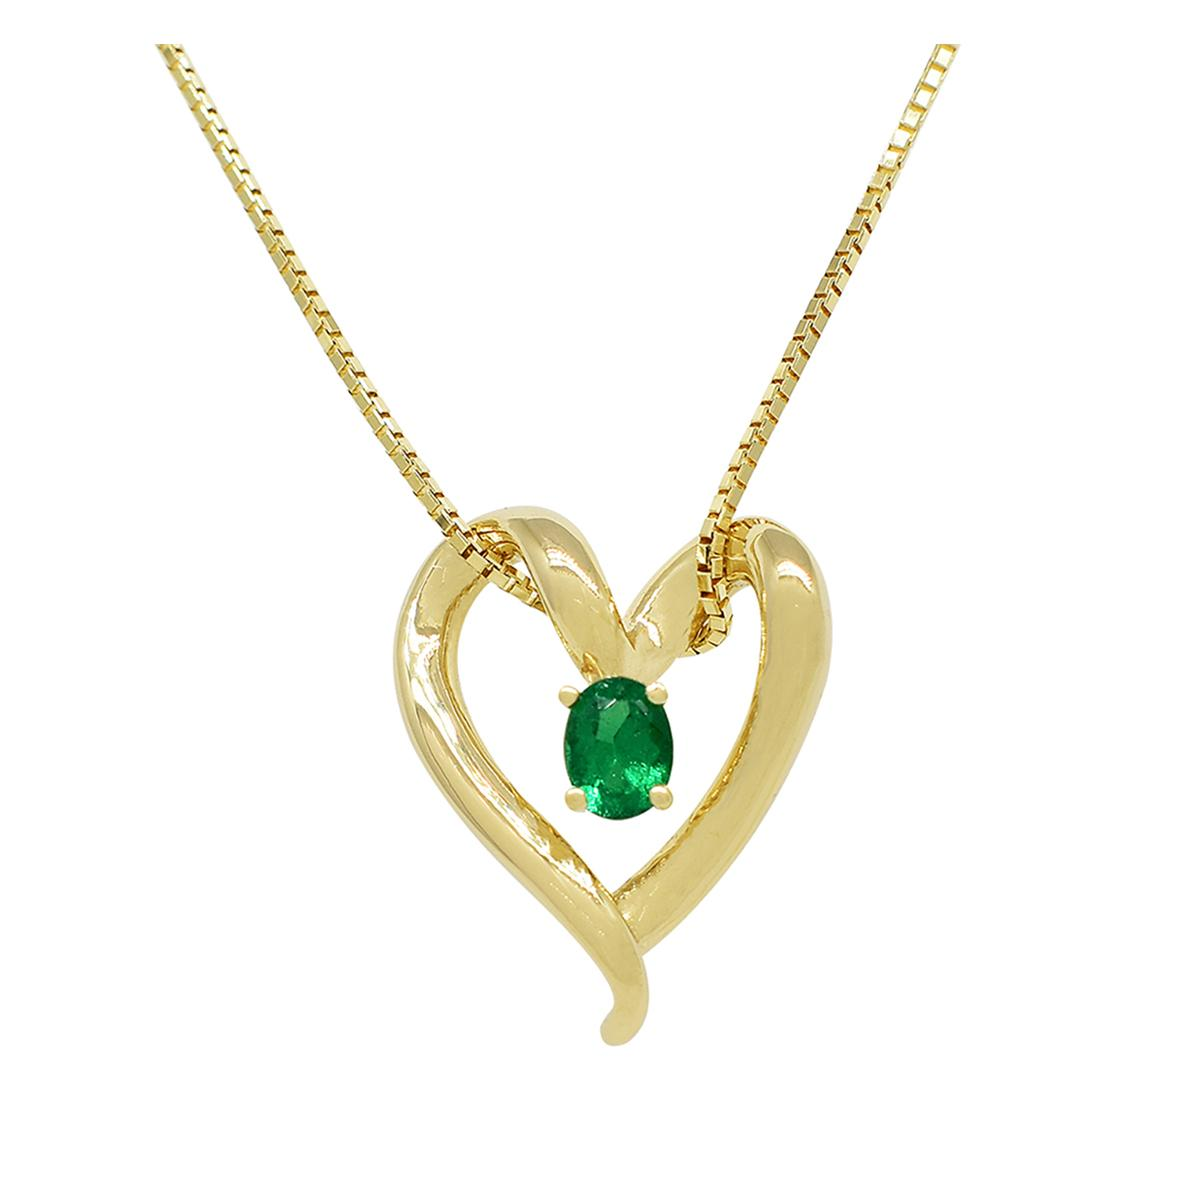 yellow-gold-heart-shaped-necklace-with-oval-shape-natural-emerald